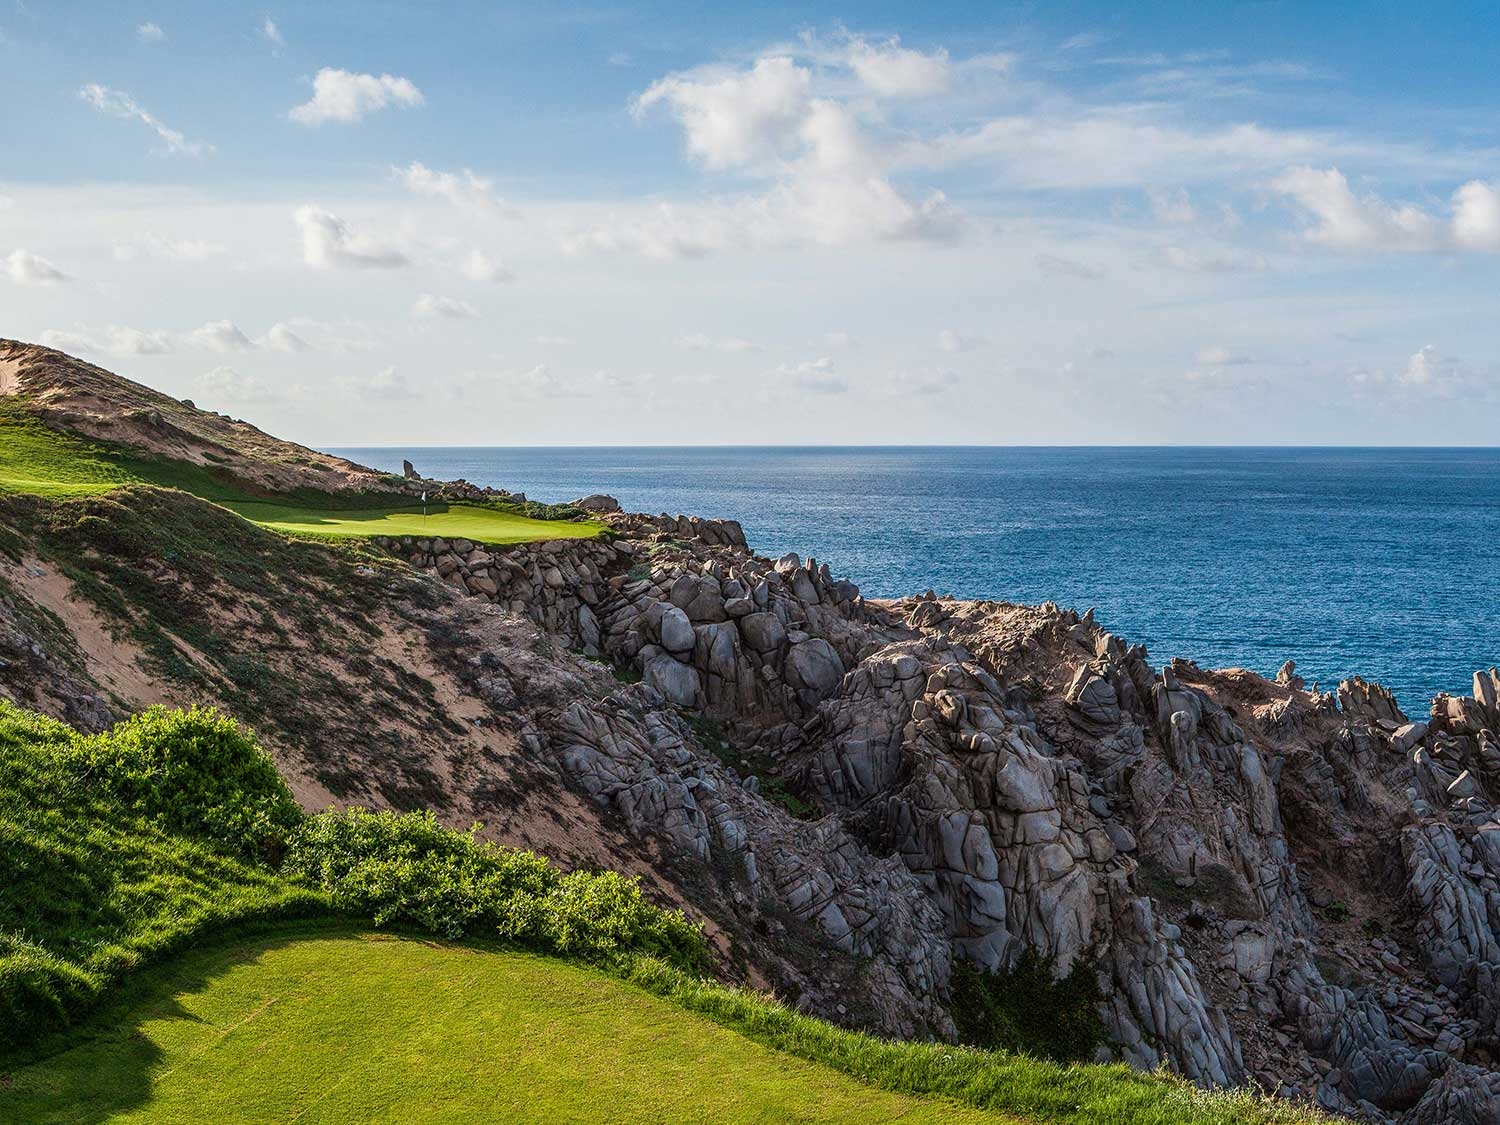 A vibrant green golf course against a rocky, oceanside.